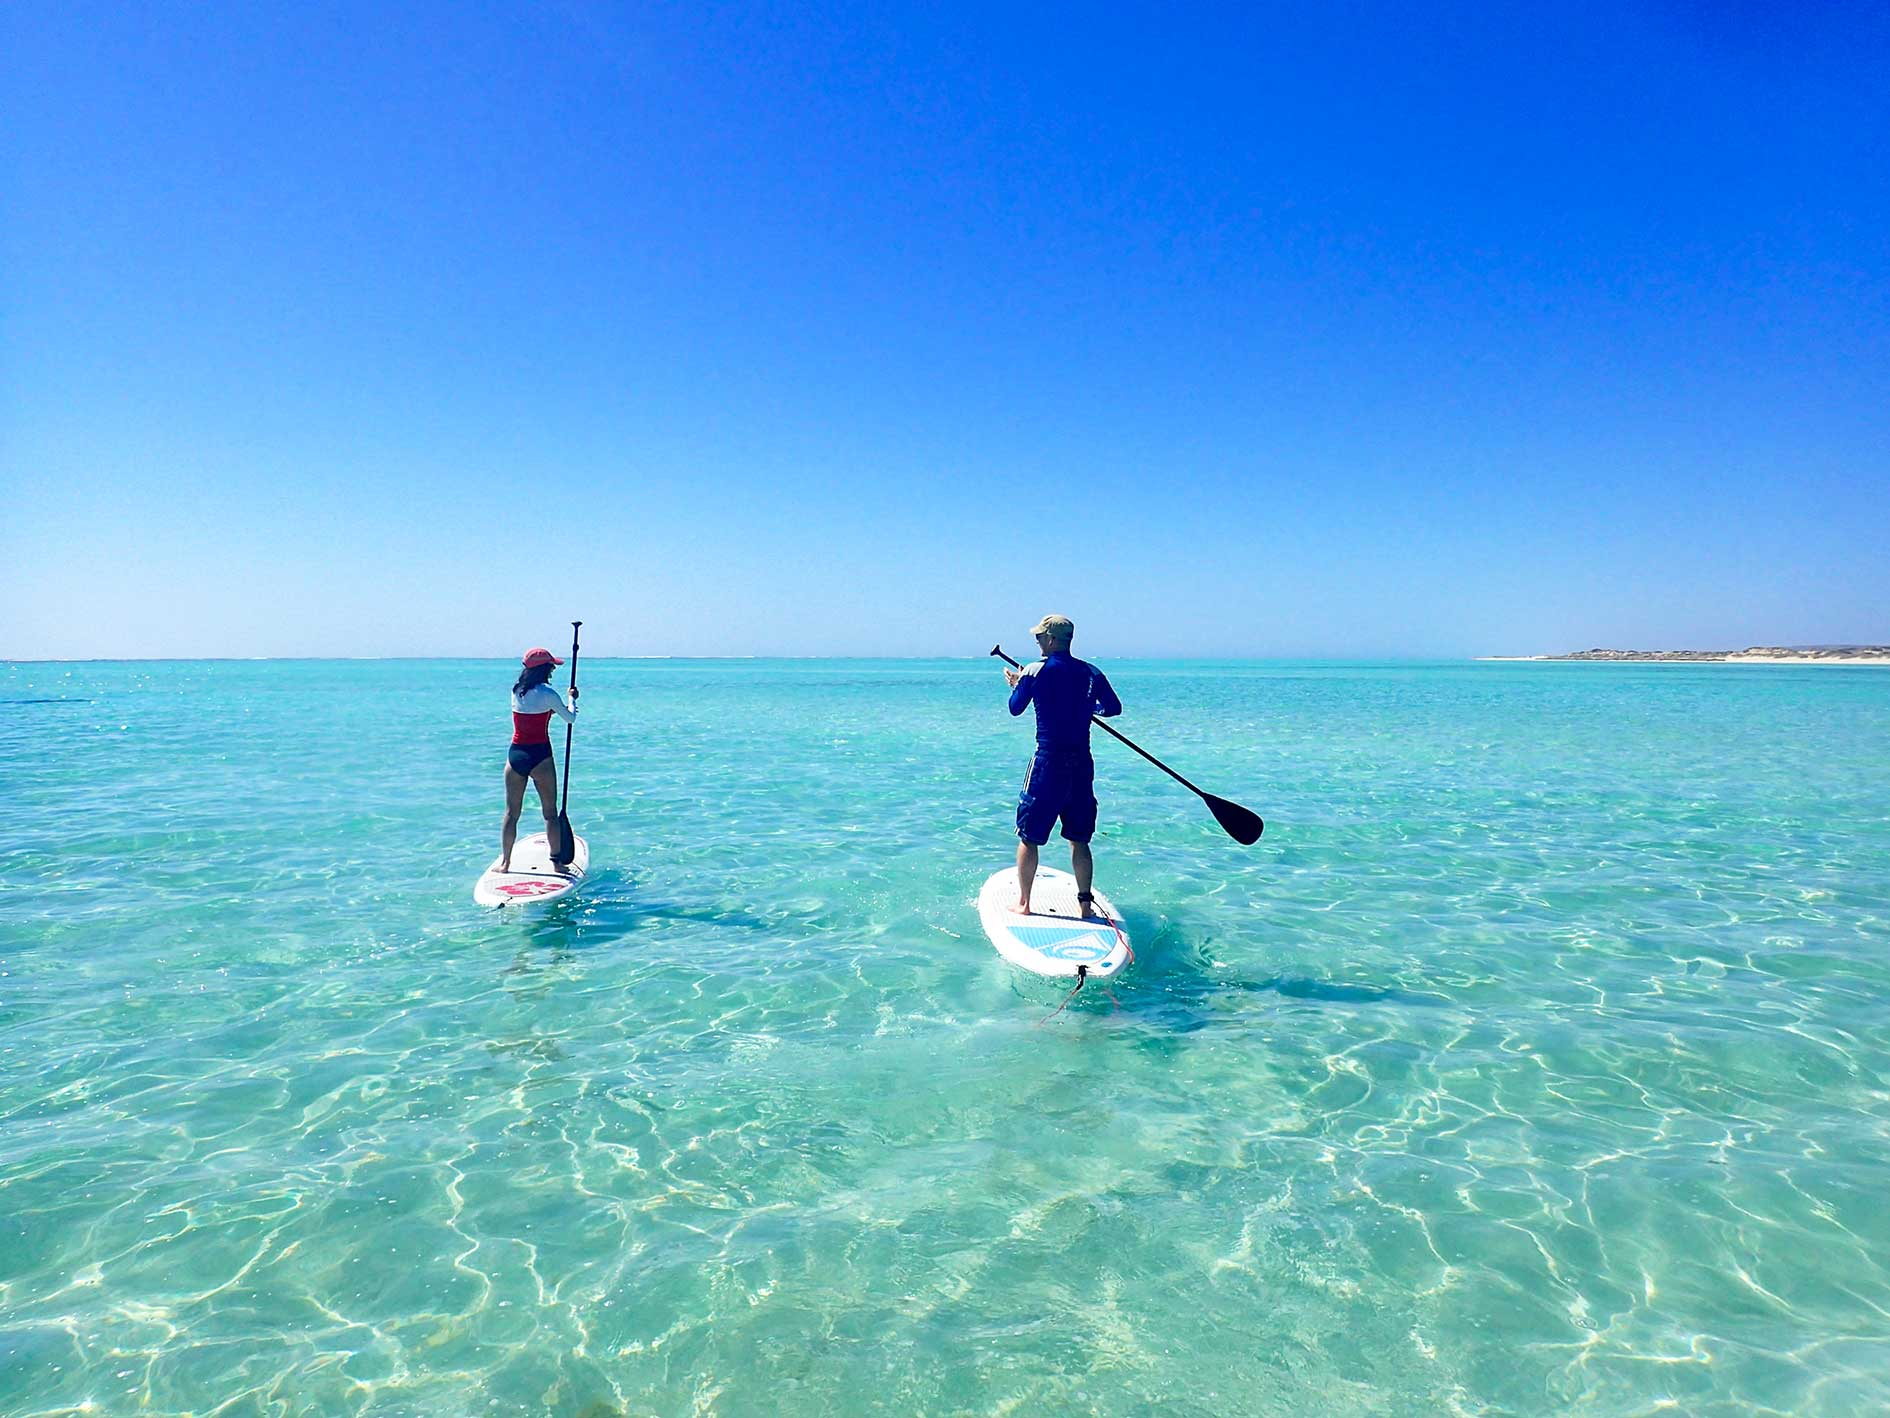 Stand up paddle board SUP hire from Exmouth, Ningaloo Reef